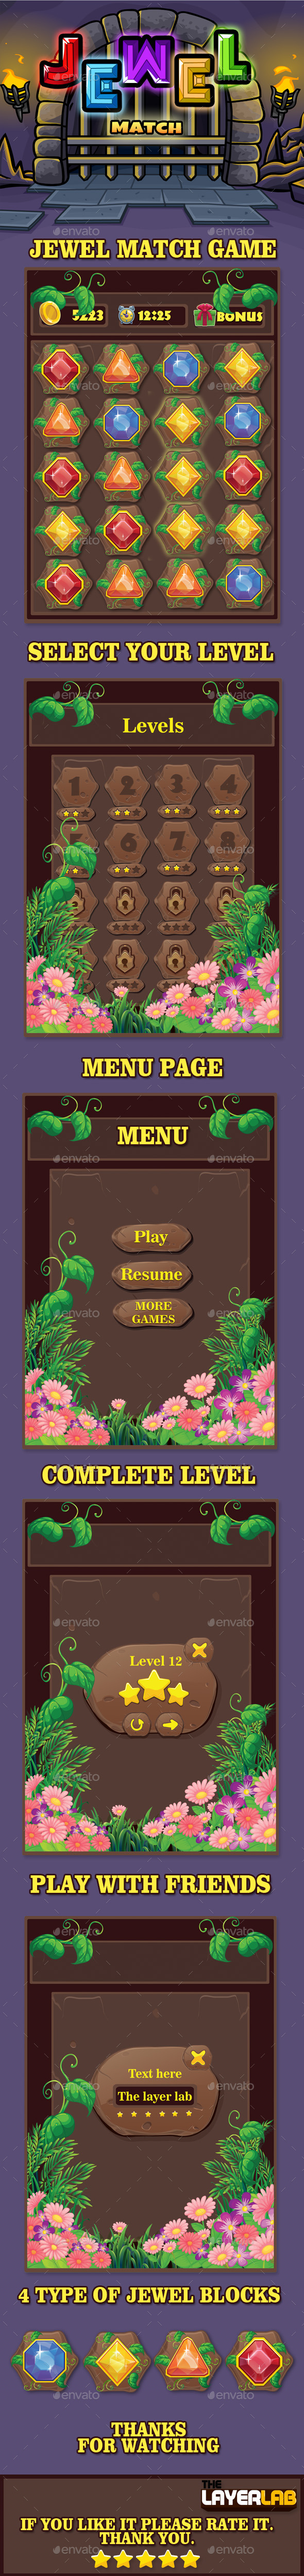 Jewel Match Game - User Interfaces Game Assets